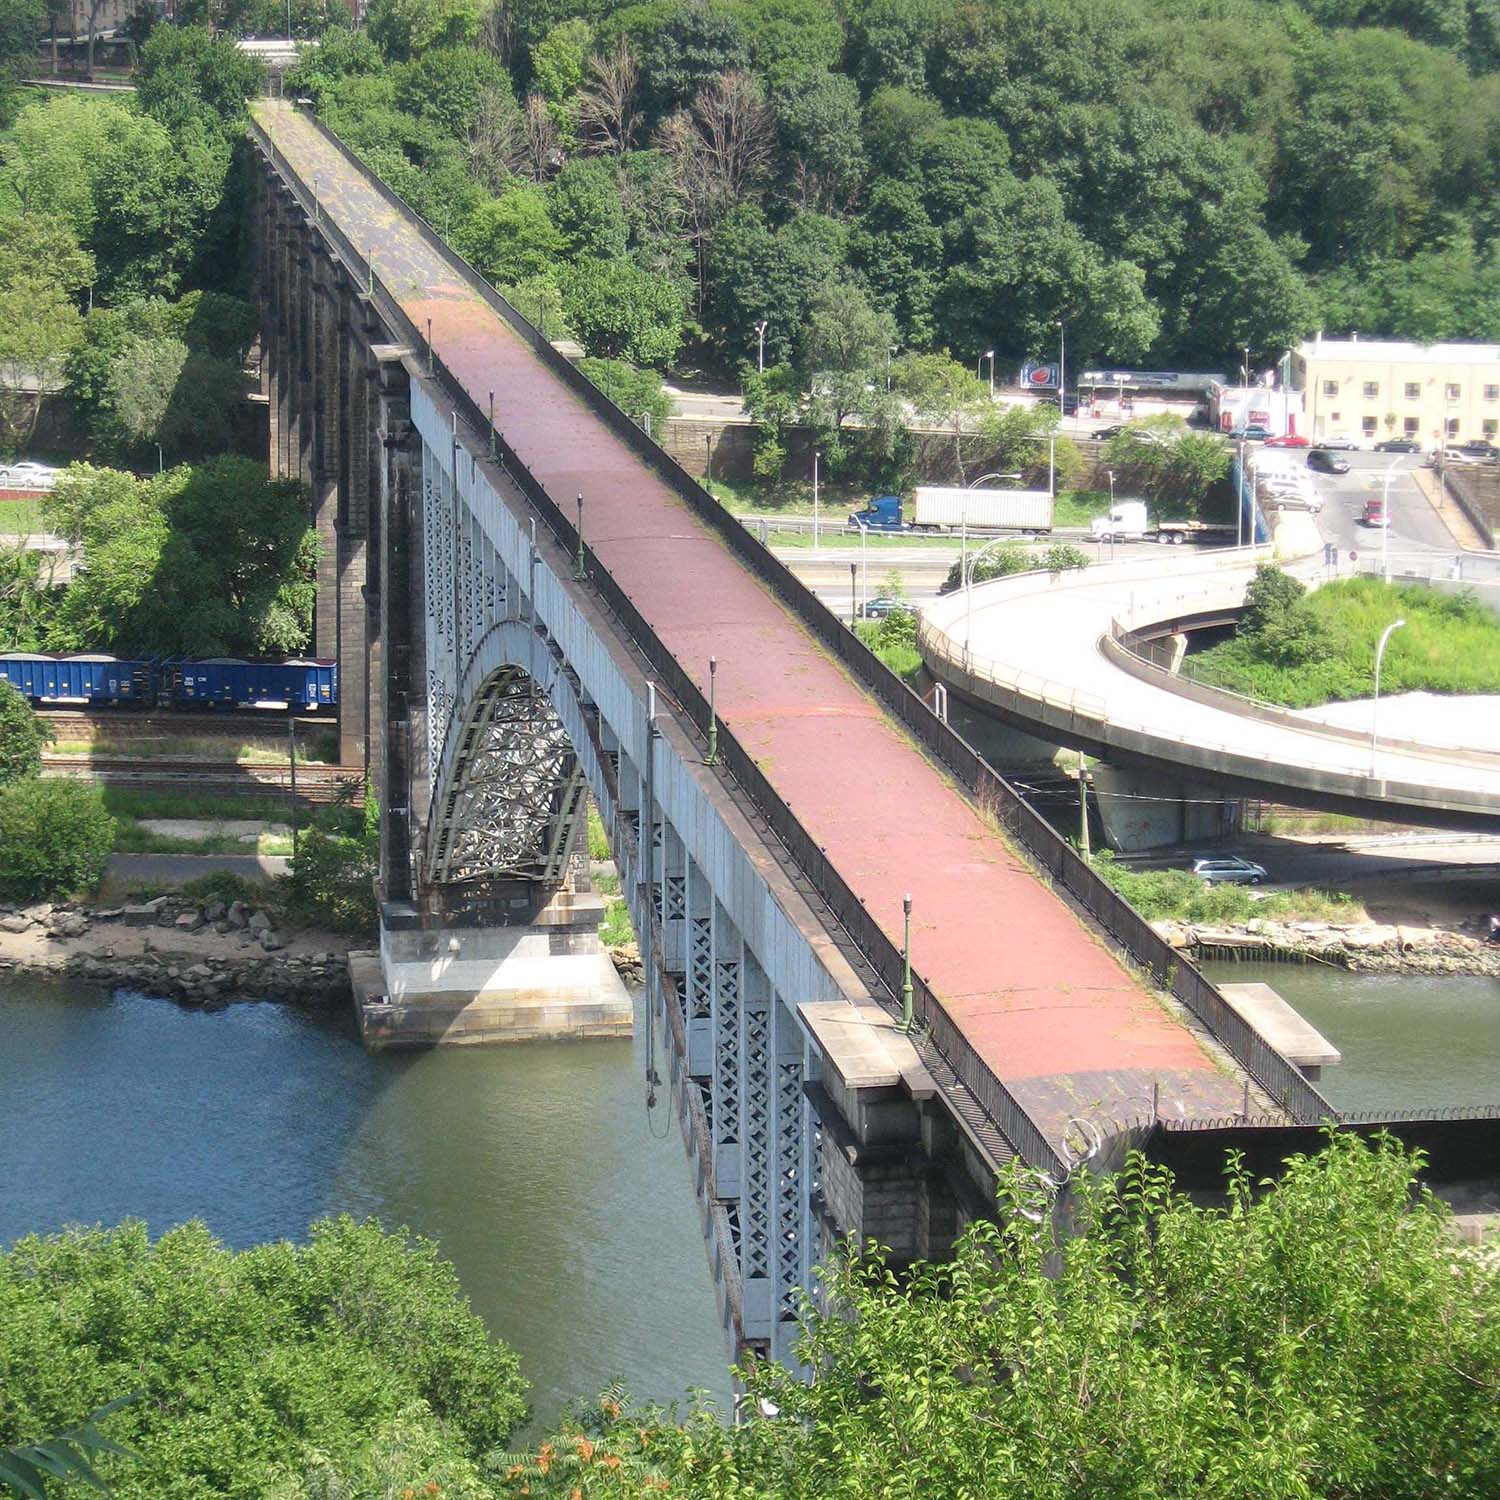 The High Bridge back in 2008